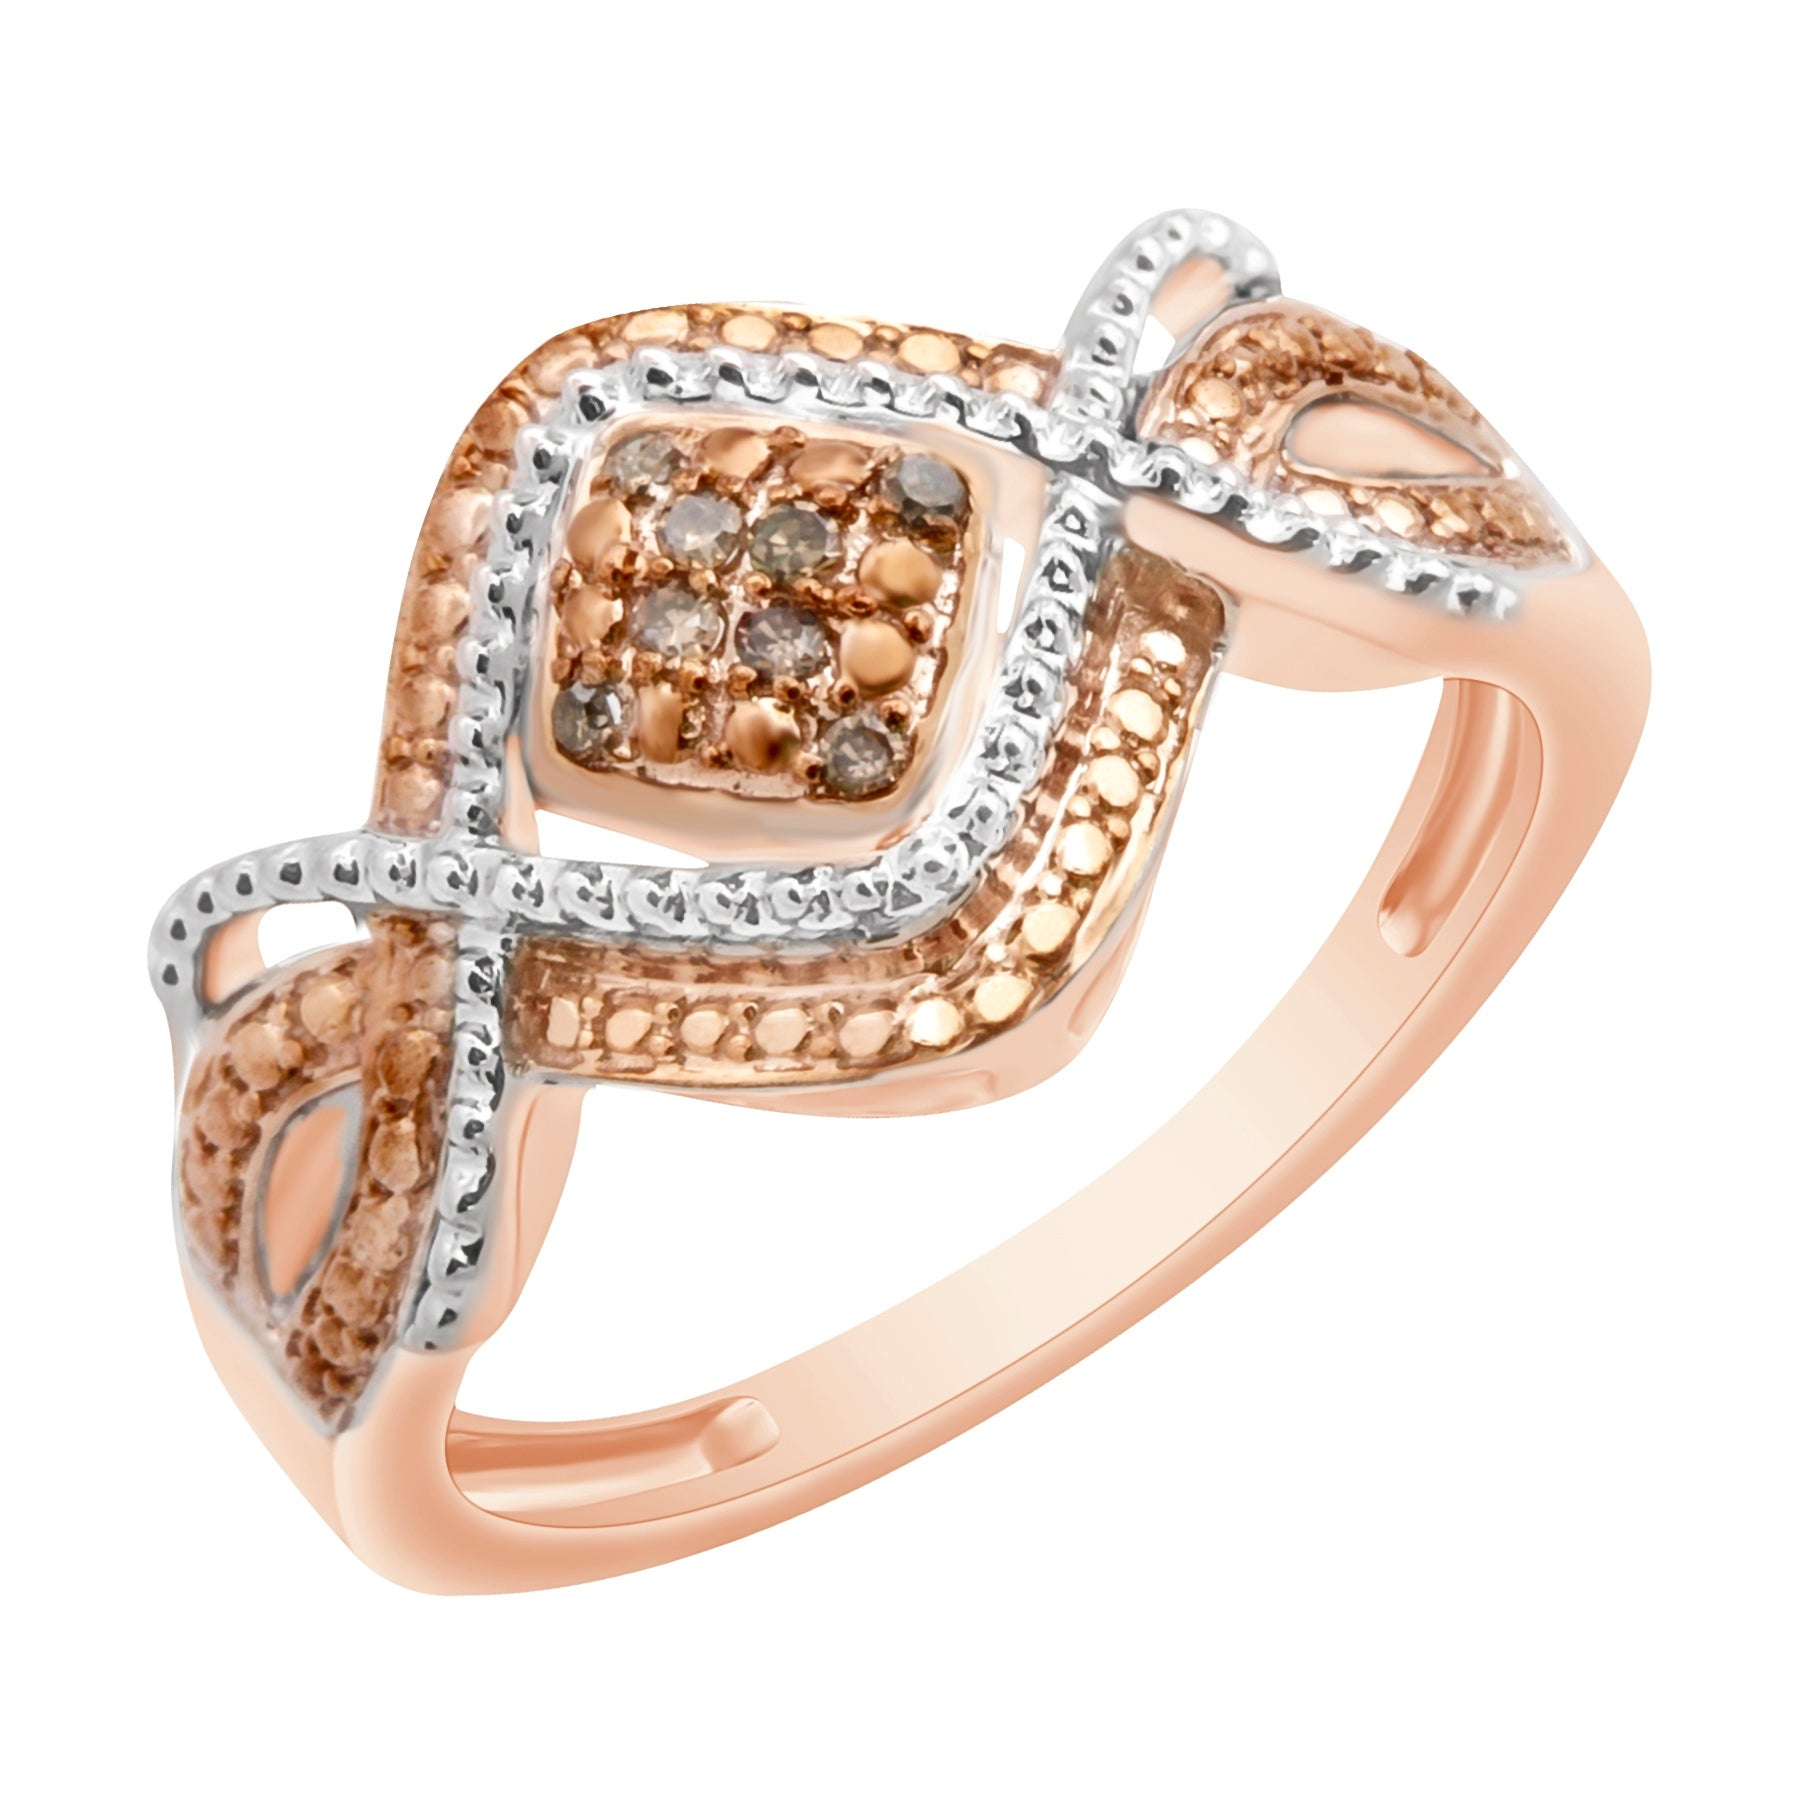 Prism Jewel Brown Diamond with Diamond Effect Engagement Ring - Thumbnail 0